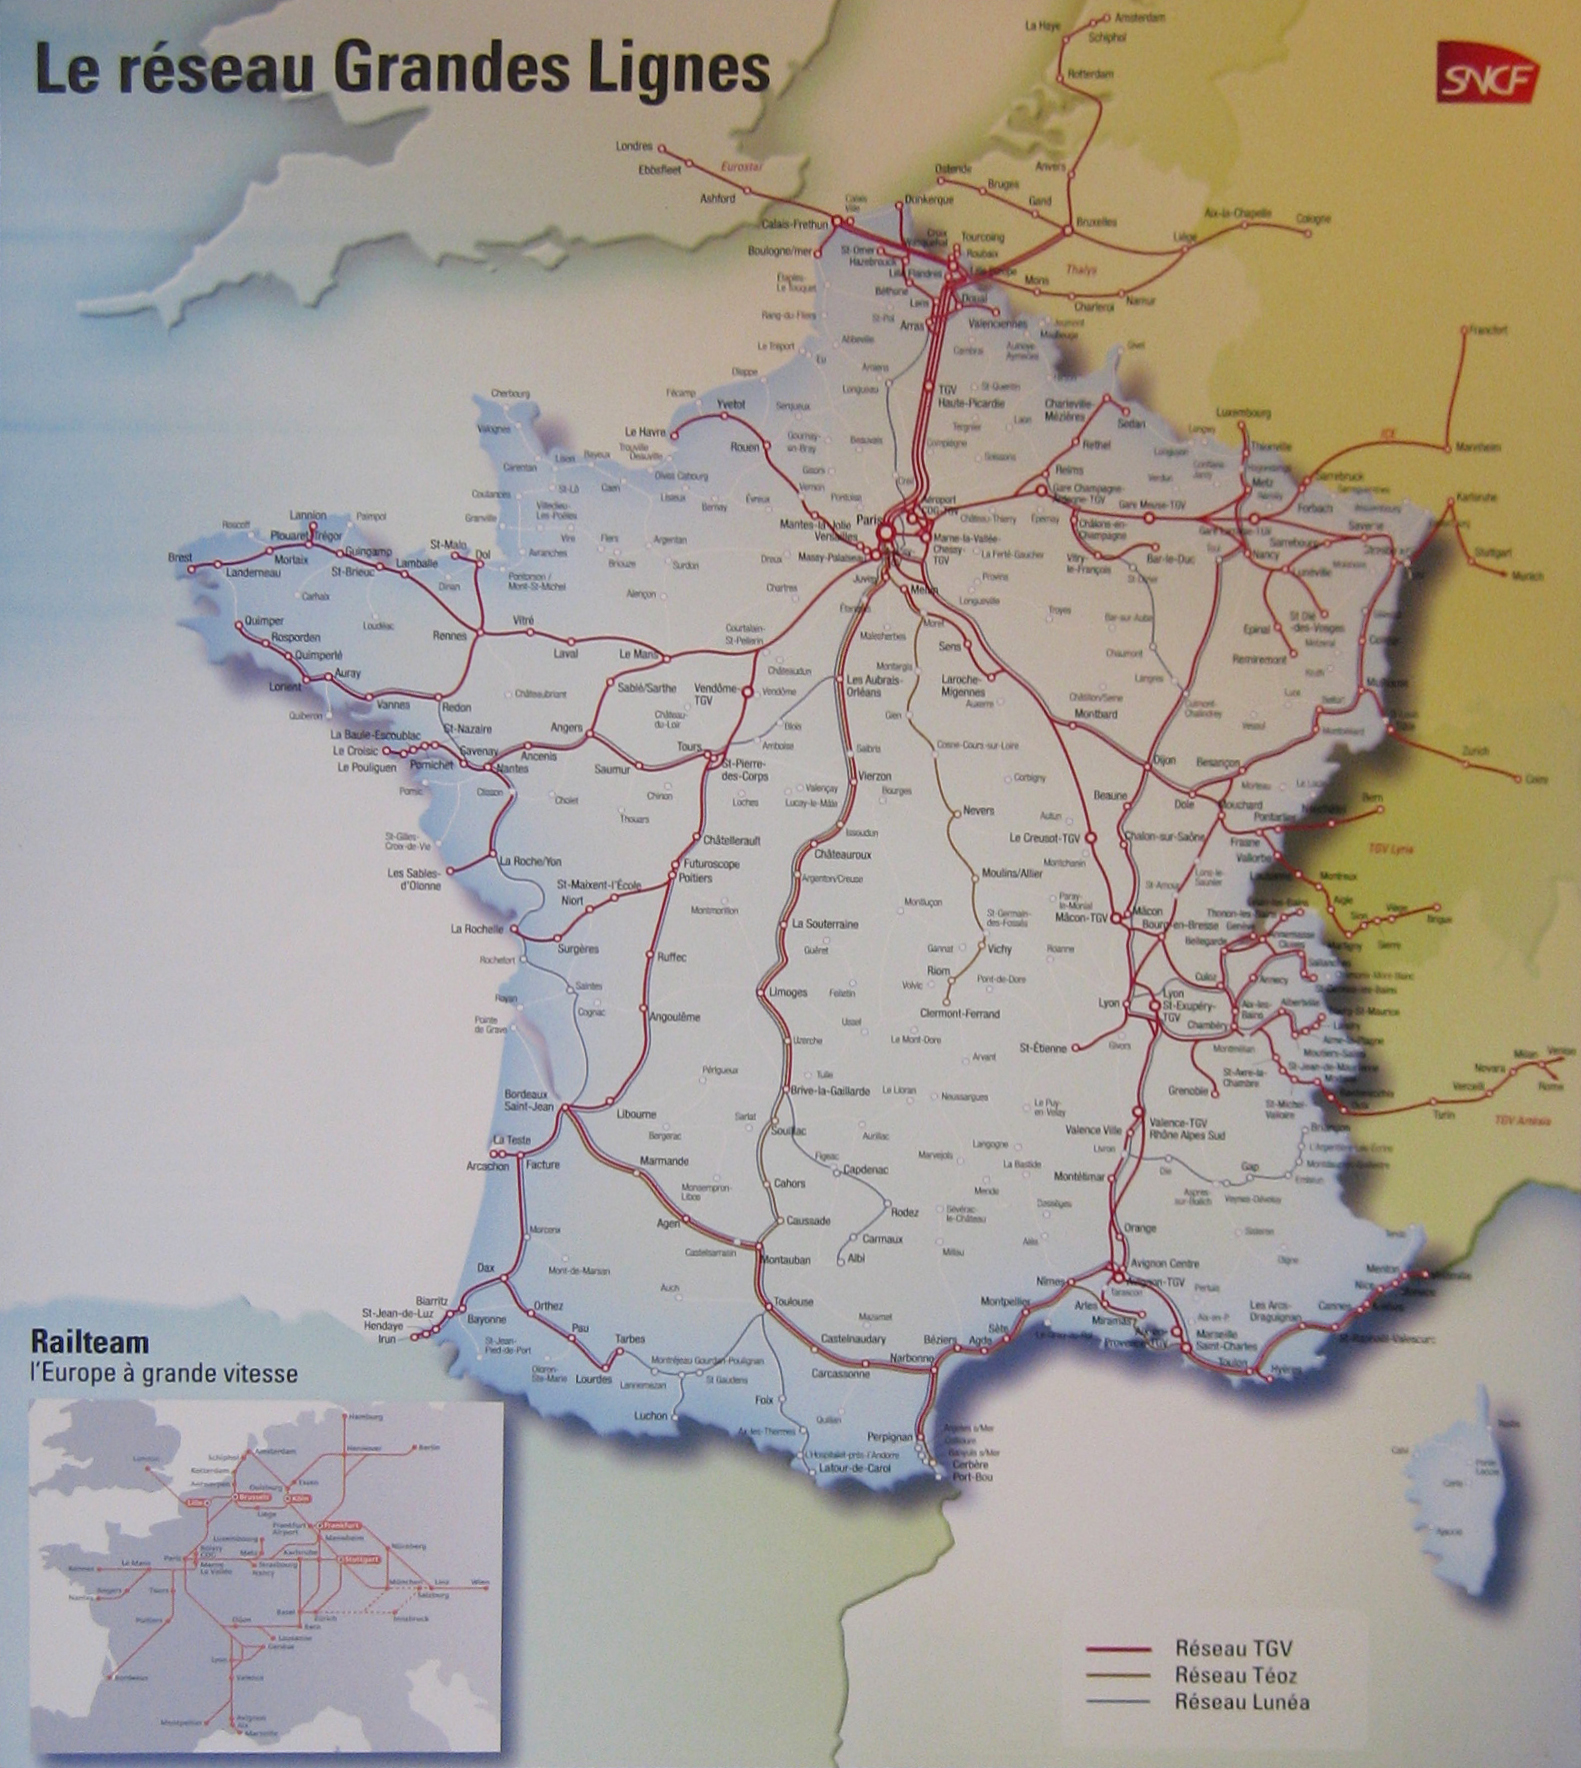 railteam sncf train rail european network map